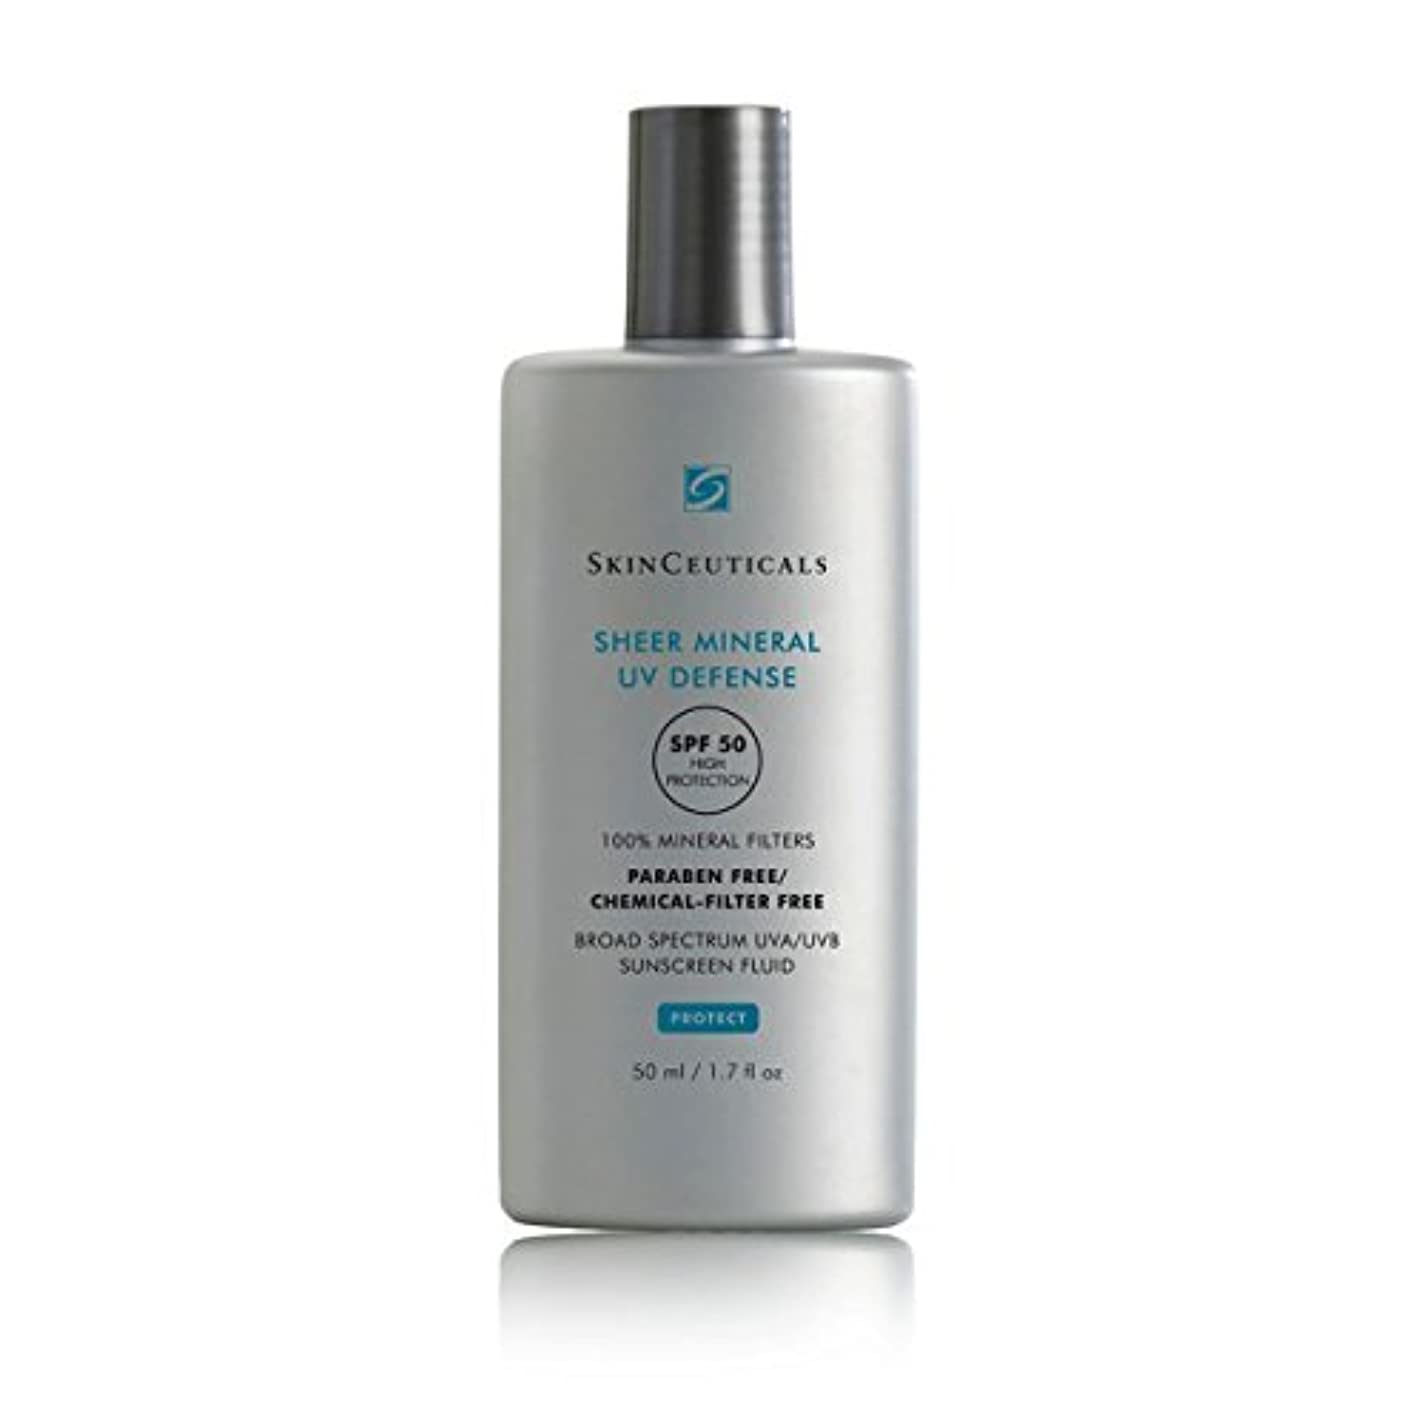 絶対にパイカバーSkinceuticals Protect Sheer Mineral Uv Defense Spf50 50ml [並行輸入品]